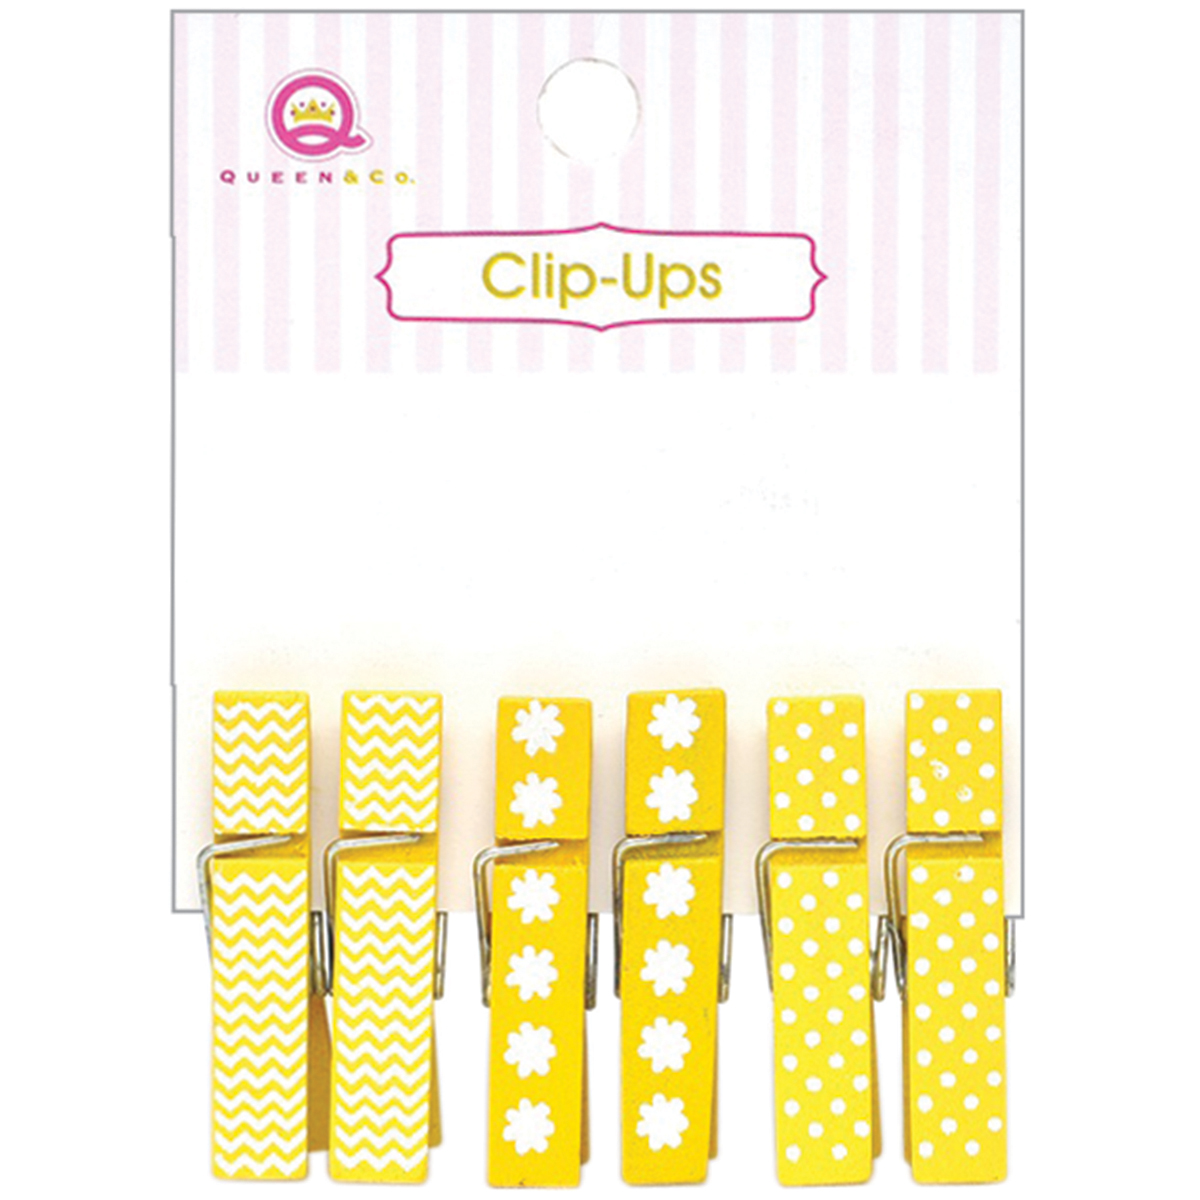 Queen & Co Clip-Ups Mini Clothespins 6/Pkg-Yellow